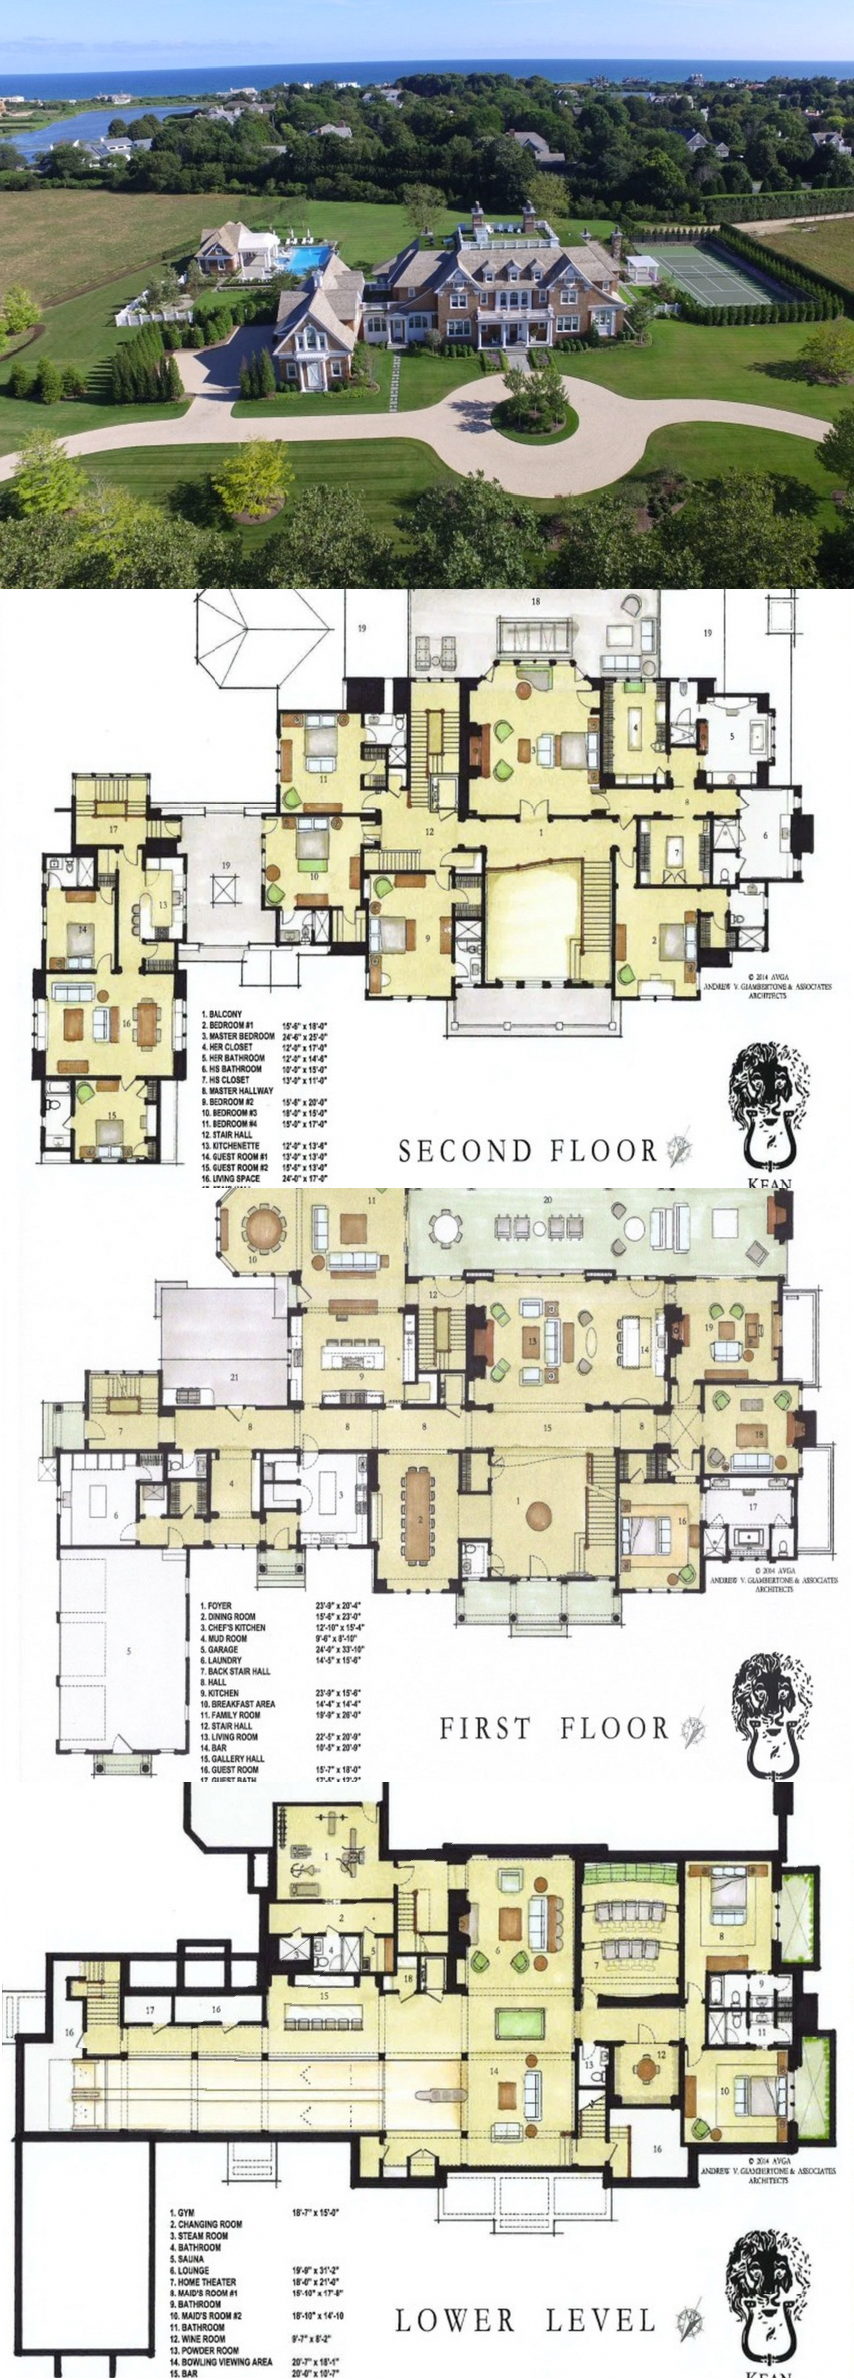 Twin Peaks A 45 Million Newly Built Shingle Mansion In Southampton Ny Homedecortipsok Mansion Floor Plan House Plans Mansion Sims House Plans